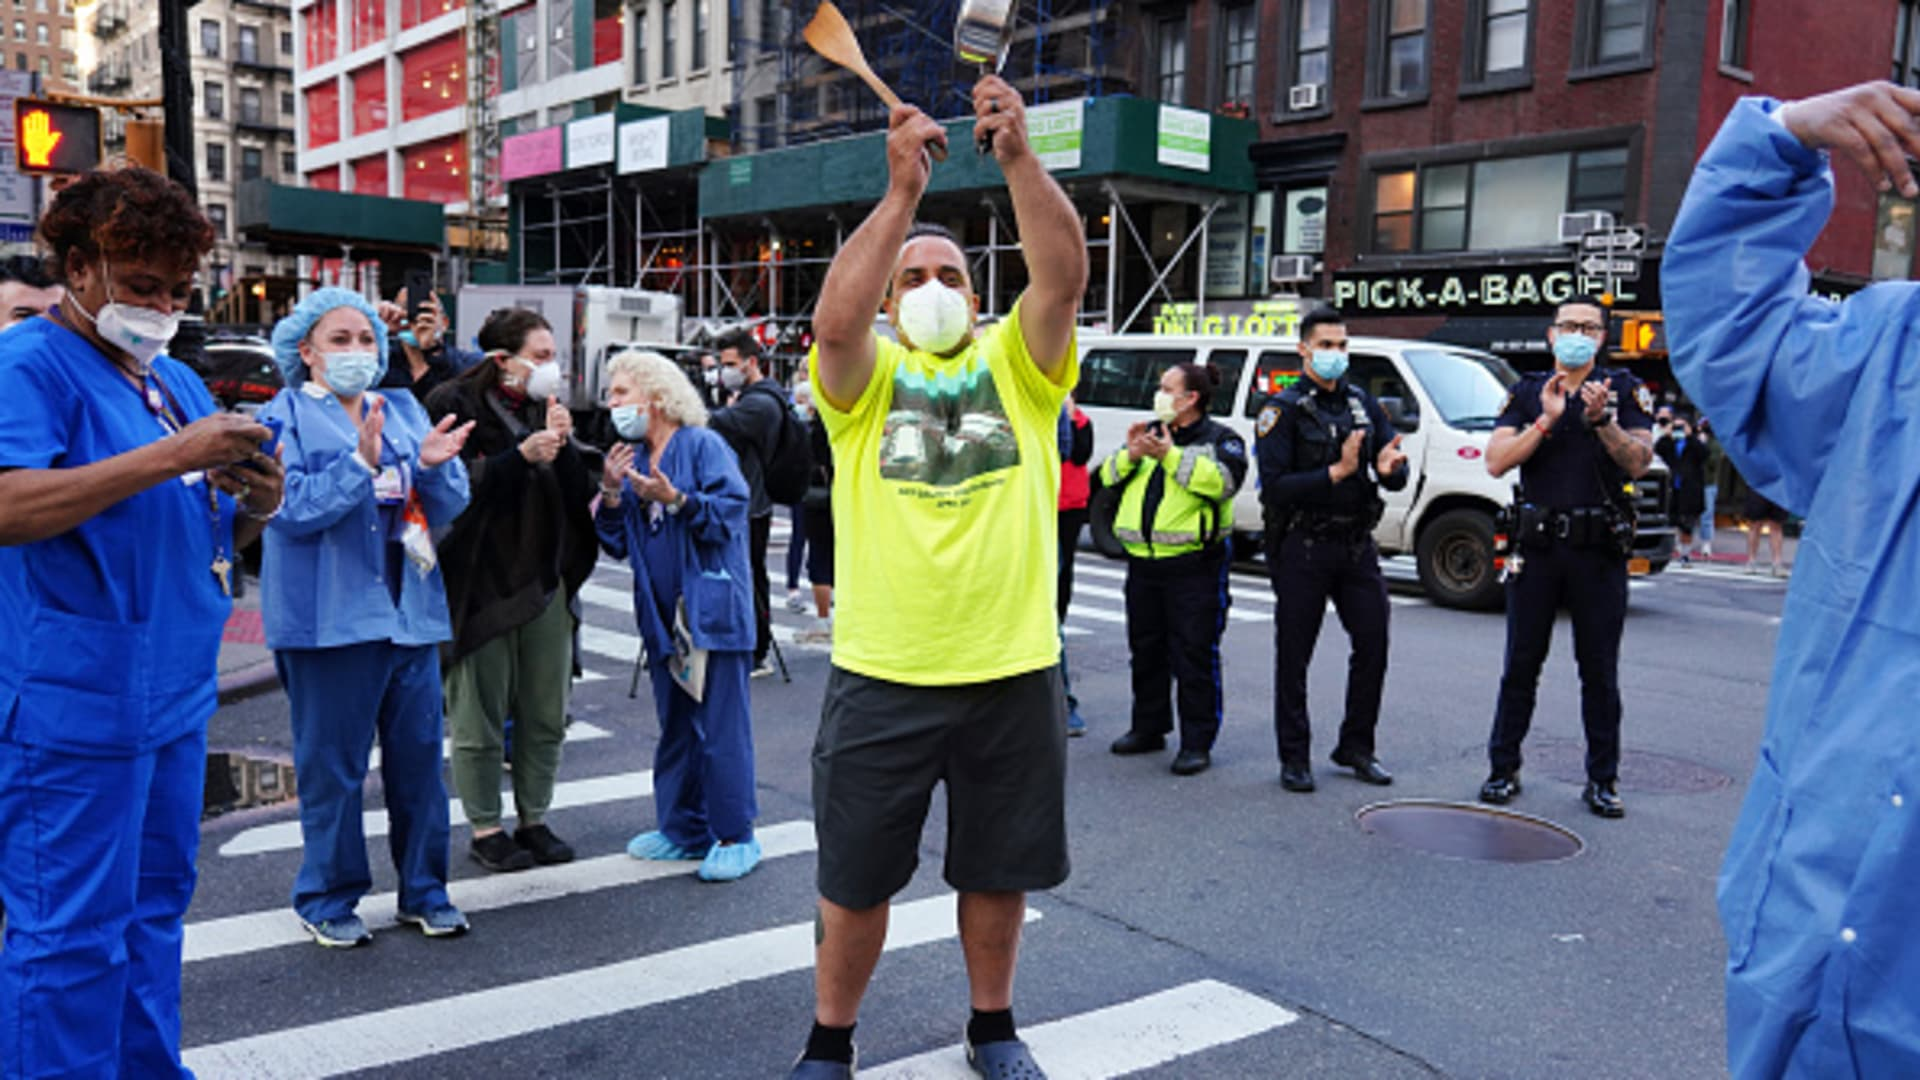 A man bangs a spatula against a pot to show gratitude to medical workers from Lenox Hill Hospital as part of the nightly #ClapBecauseWeCare during the coronavirus pandemic on May 07, 2020 in New York City.